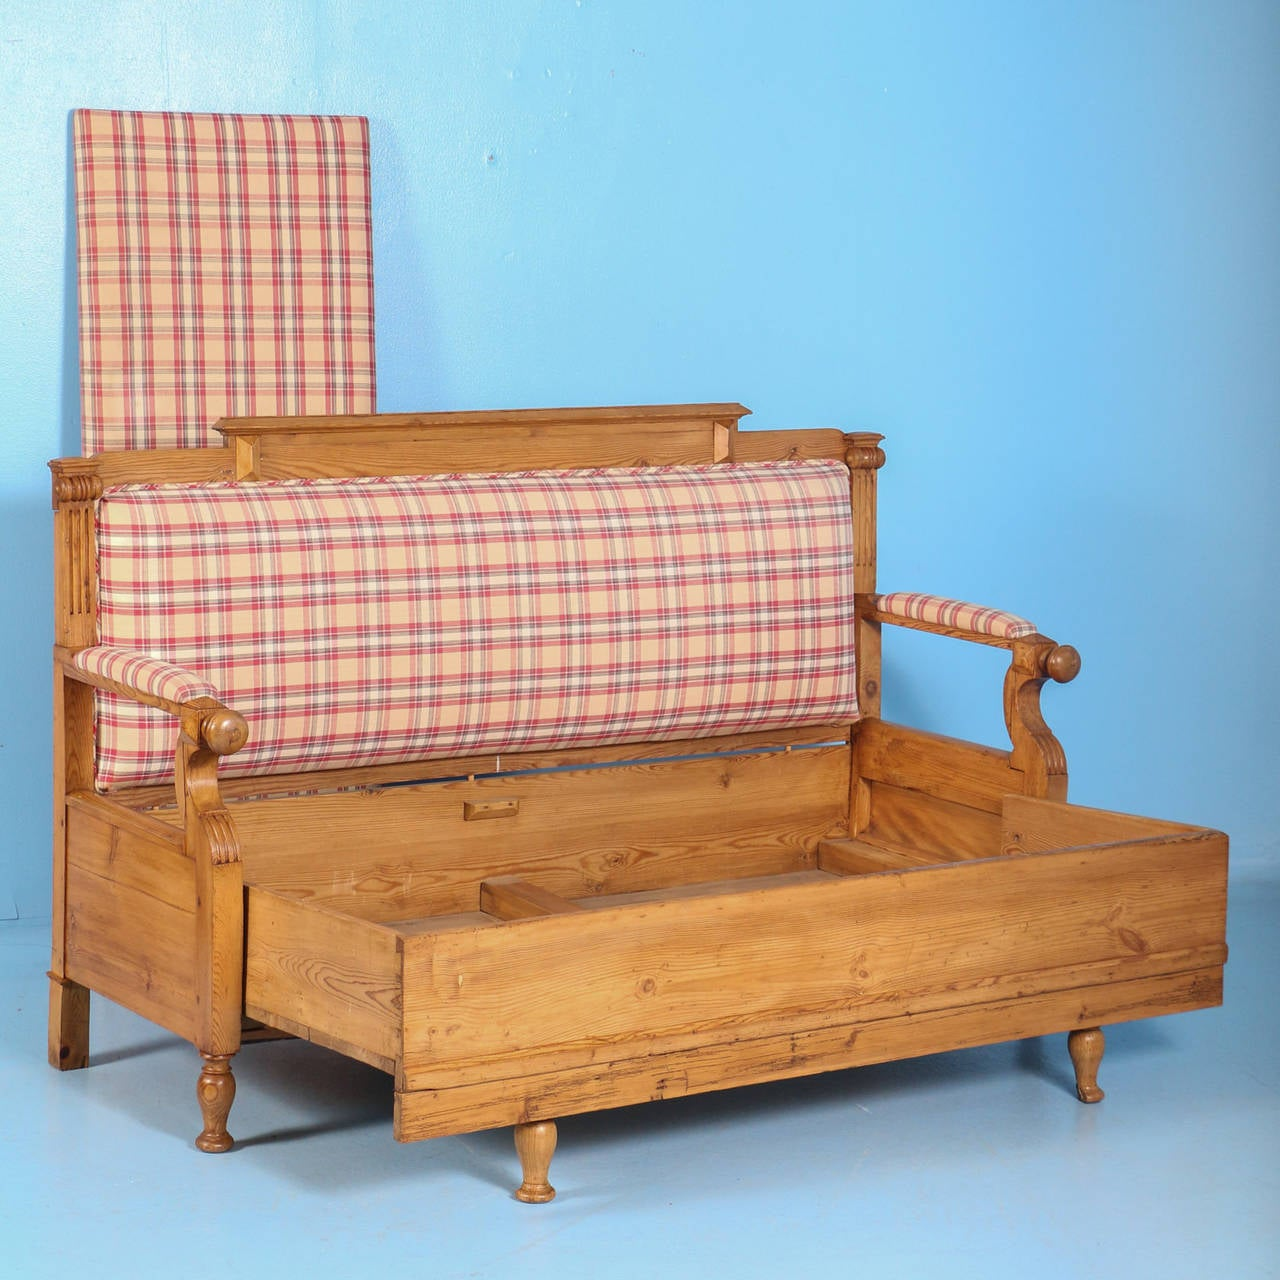 Antique Swedish Pine Bench with Upholstered Seat, circa 1890 In Good Condition For Sale In Denver, CO